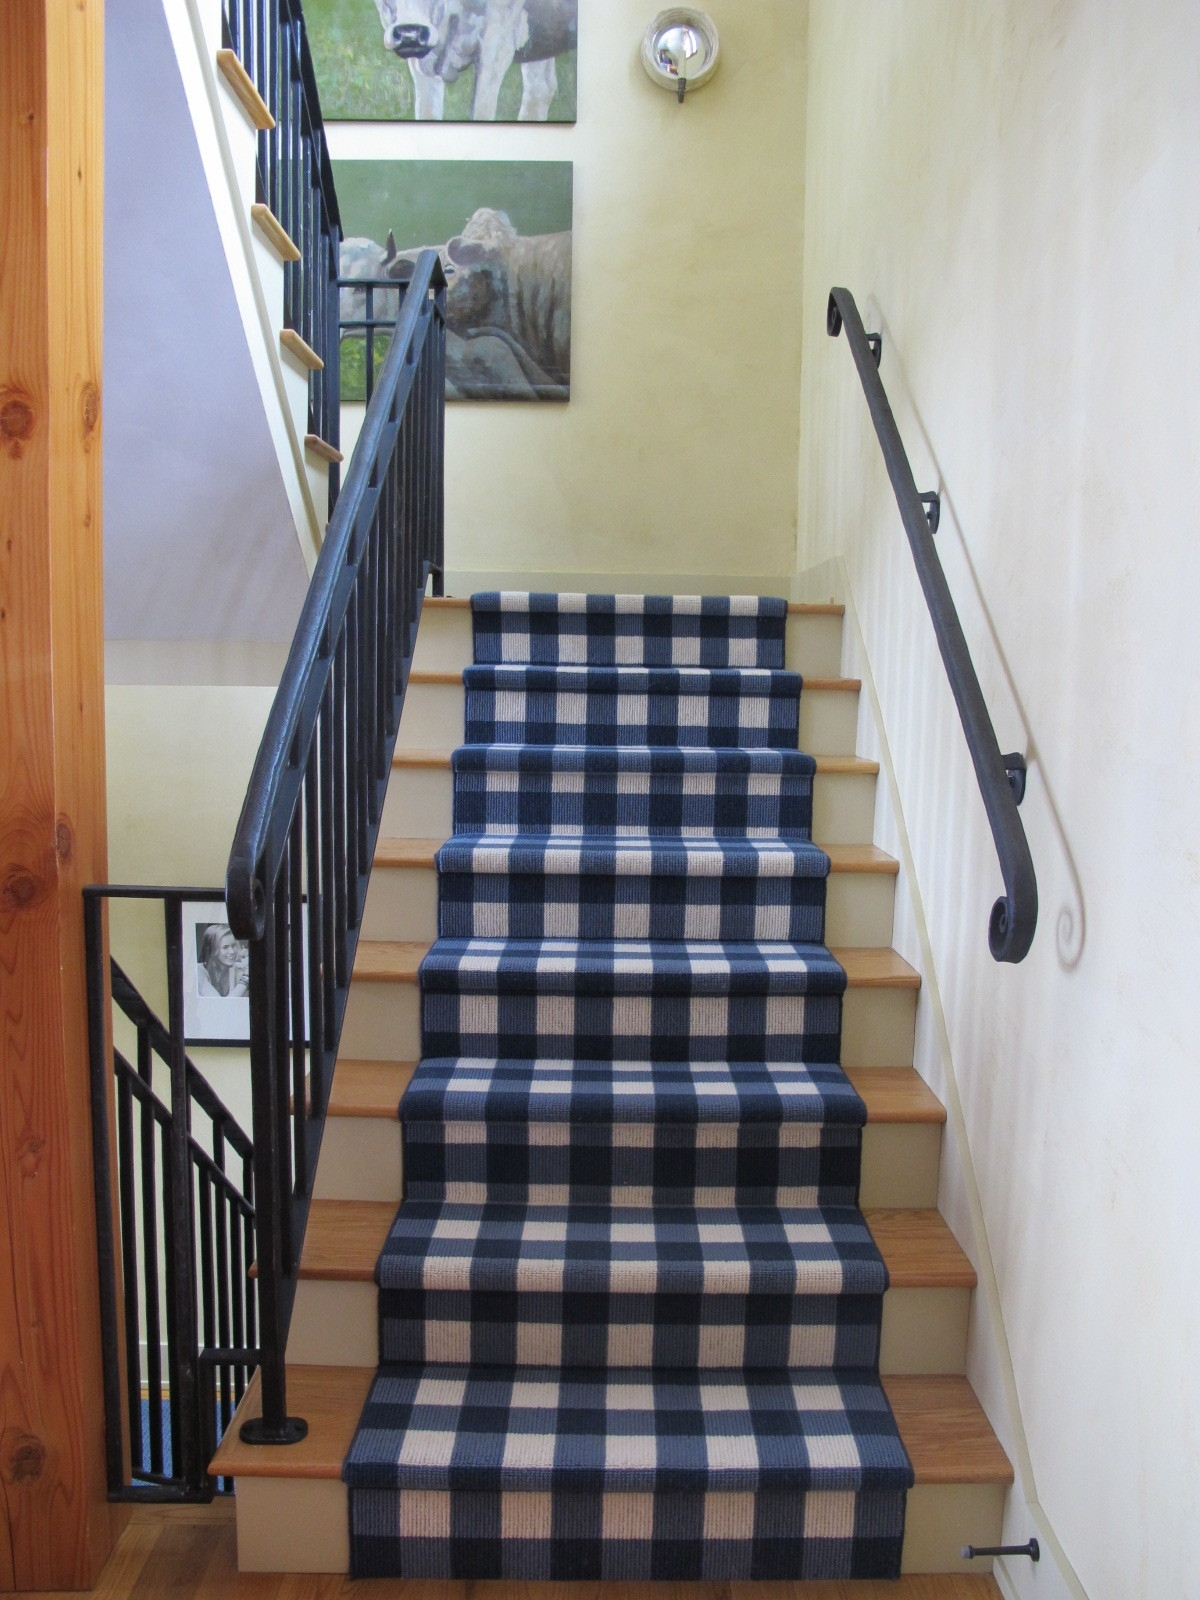 We finished this project a few years ago, but we still love this runner! Too bad  Karistan  doesn't sell it any more. We'd use it again.